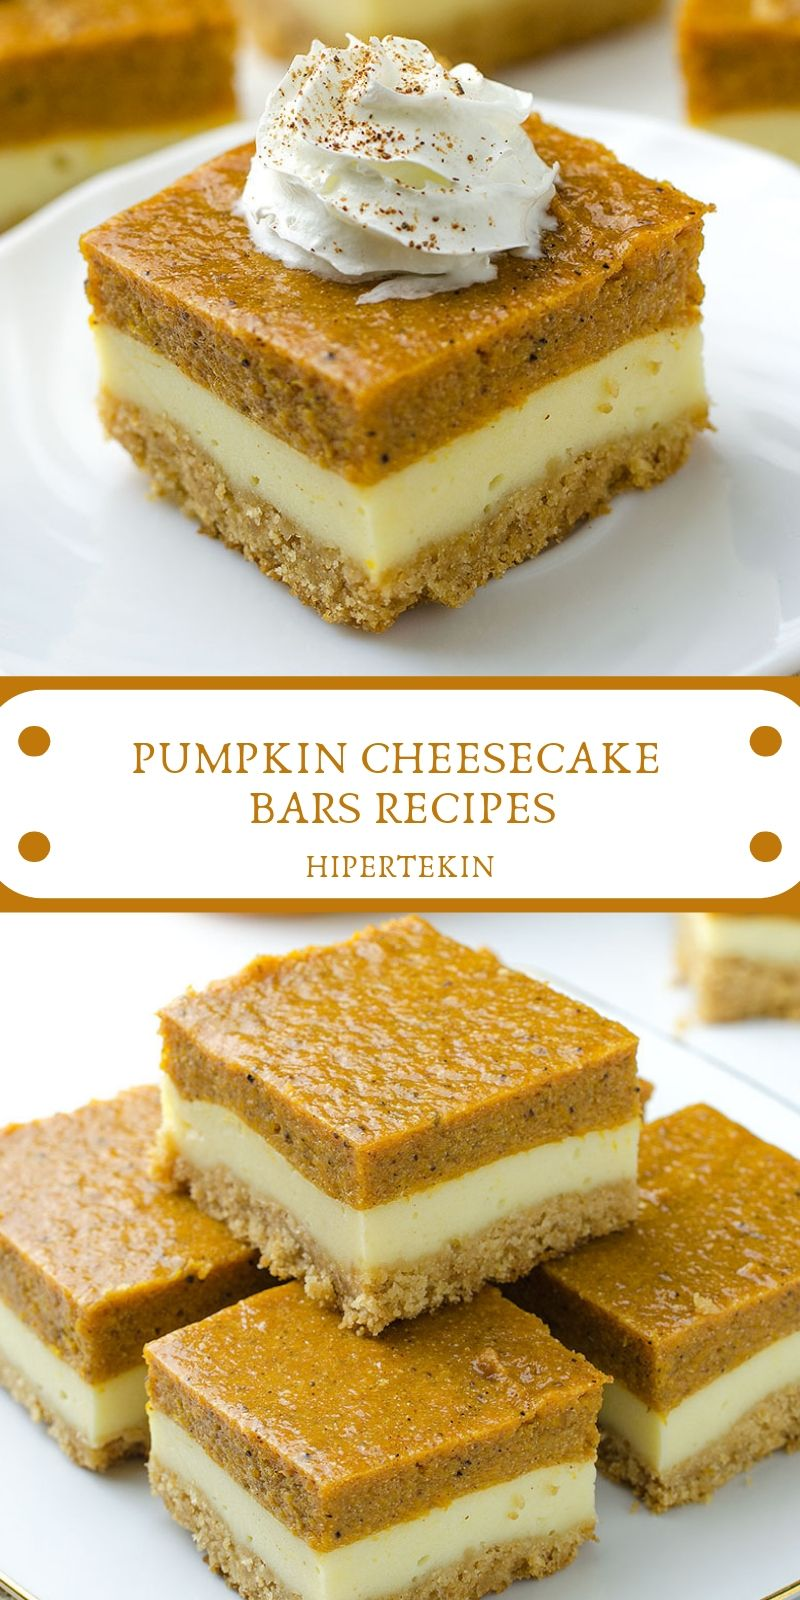 PUMPKIN CHEESECAKE BARS RECIPES -   16 desserts Cheesecake treats ideas